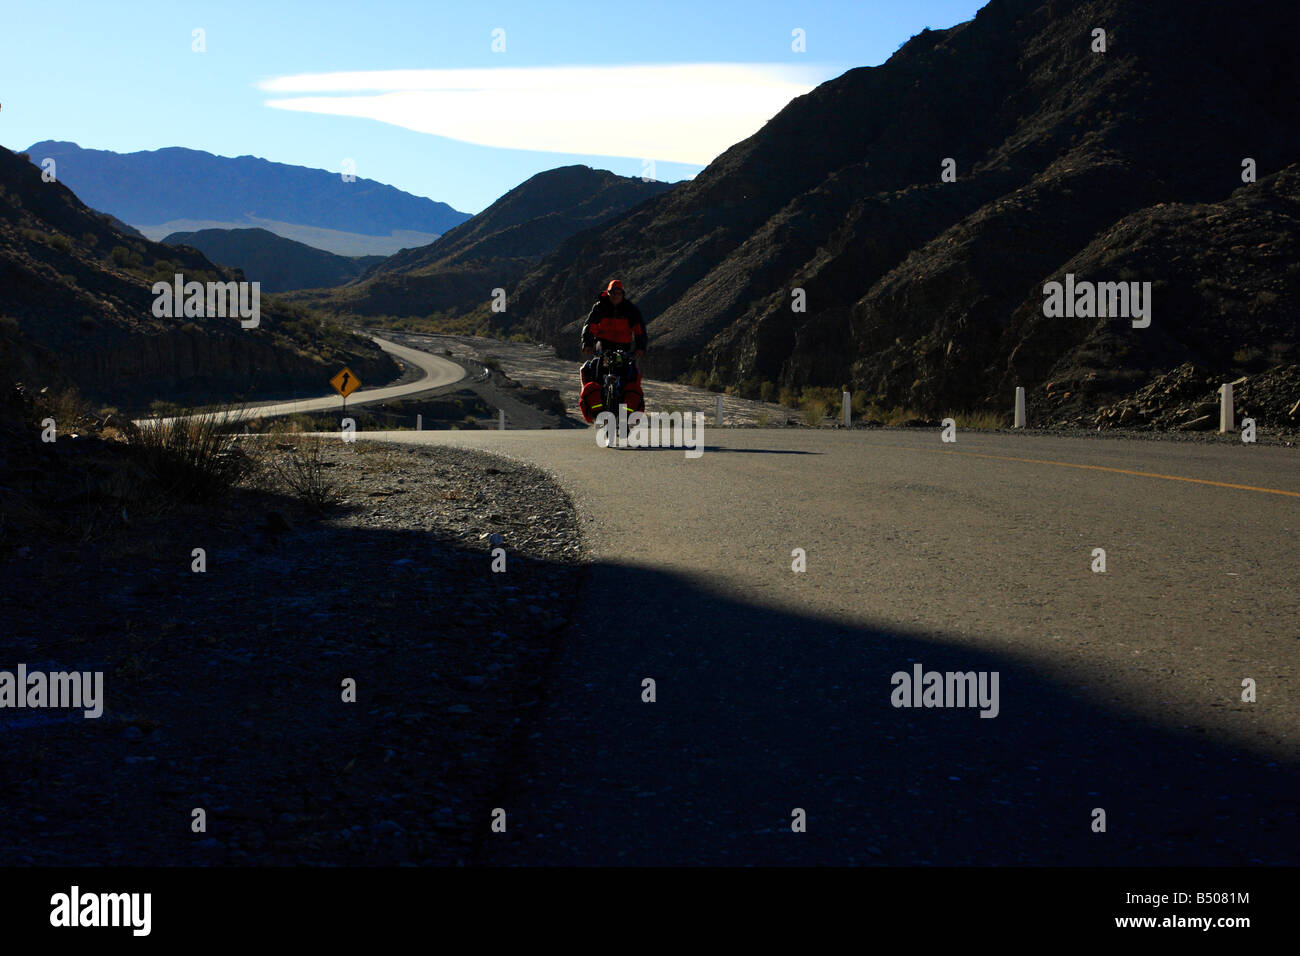 A man is cycling in the Andes San Juan province Argentina - Stock Image